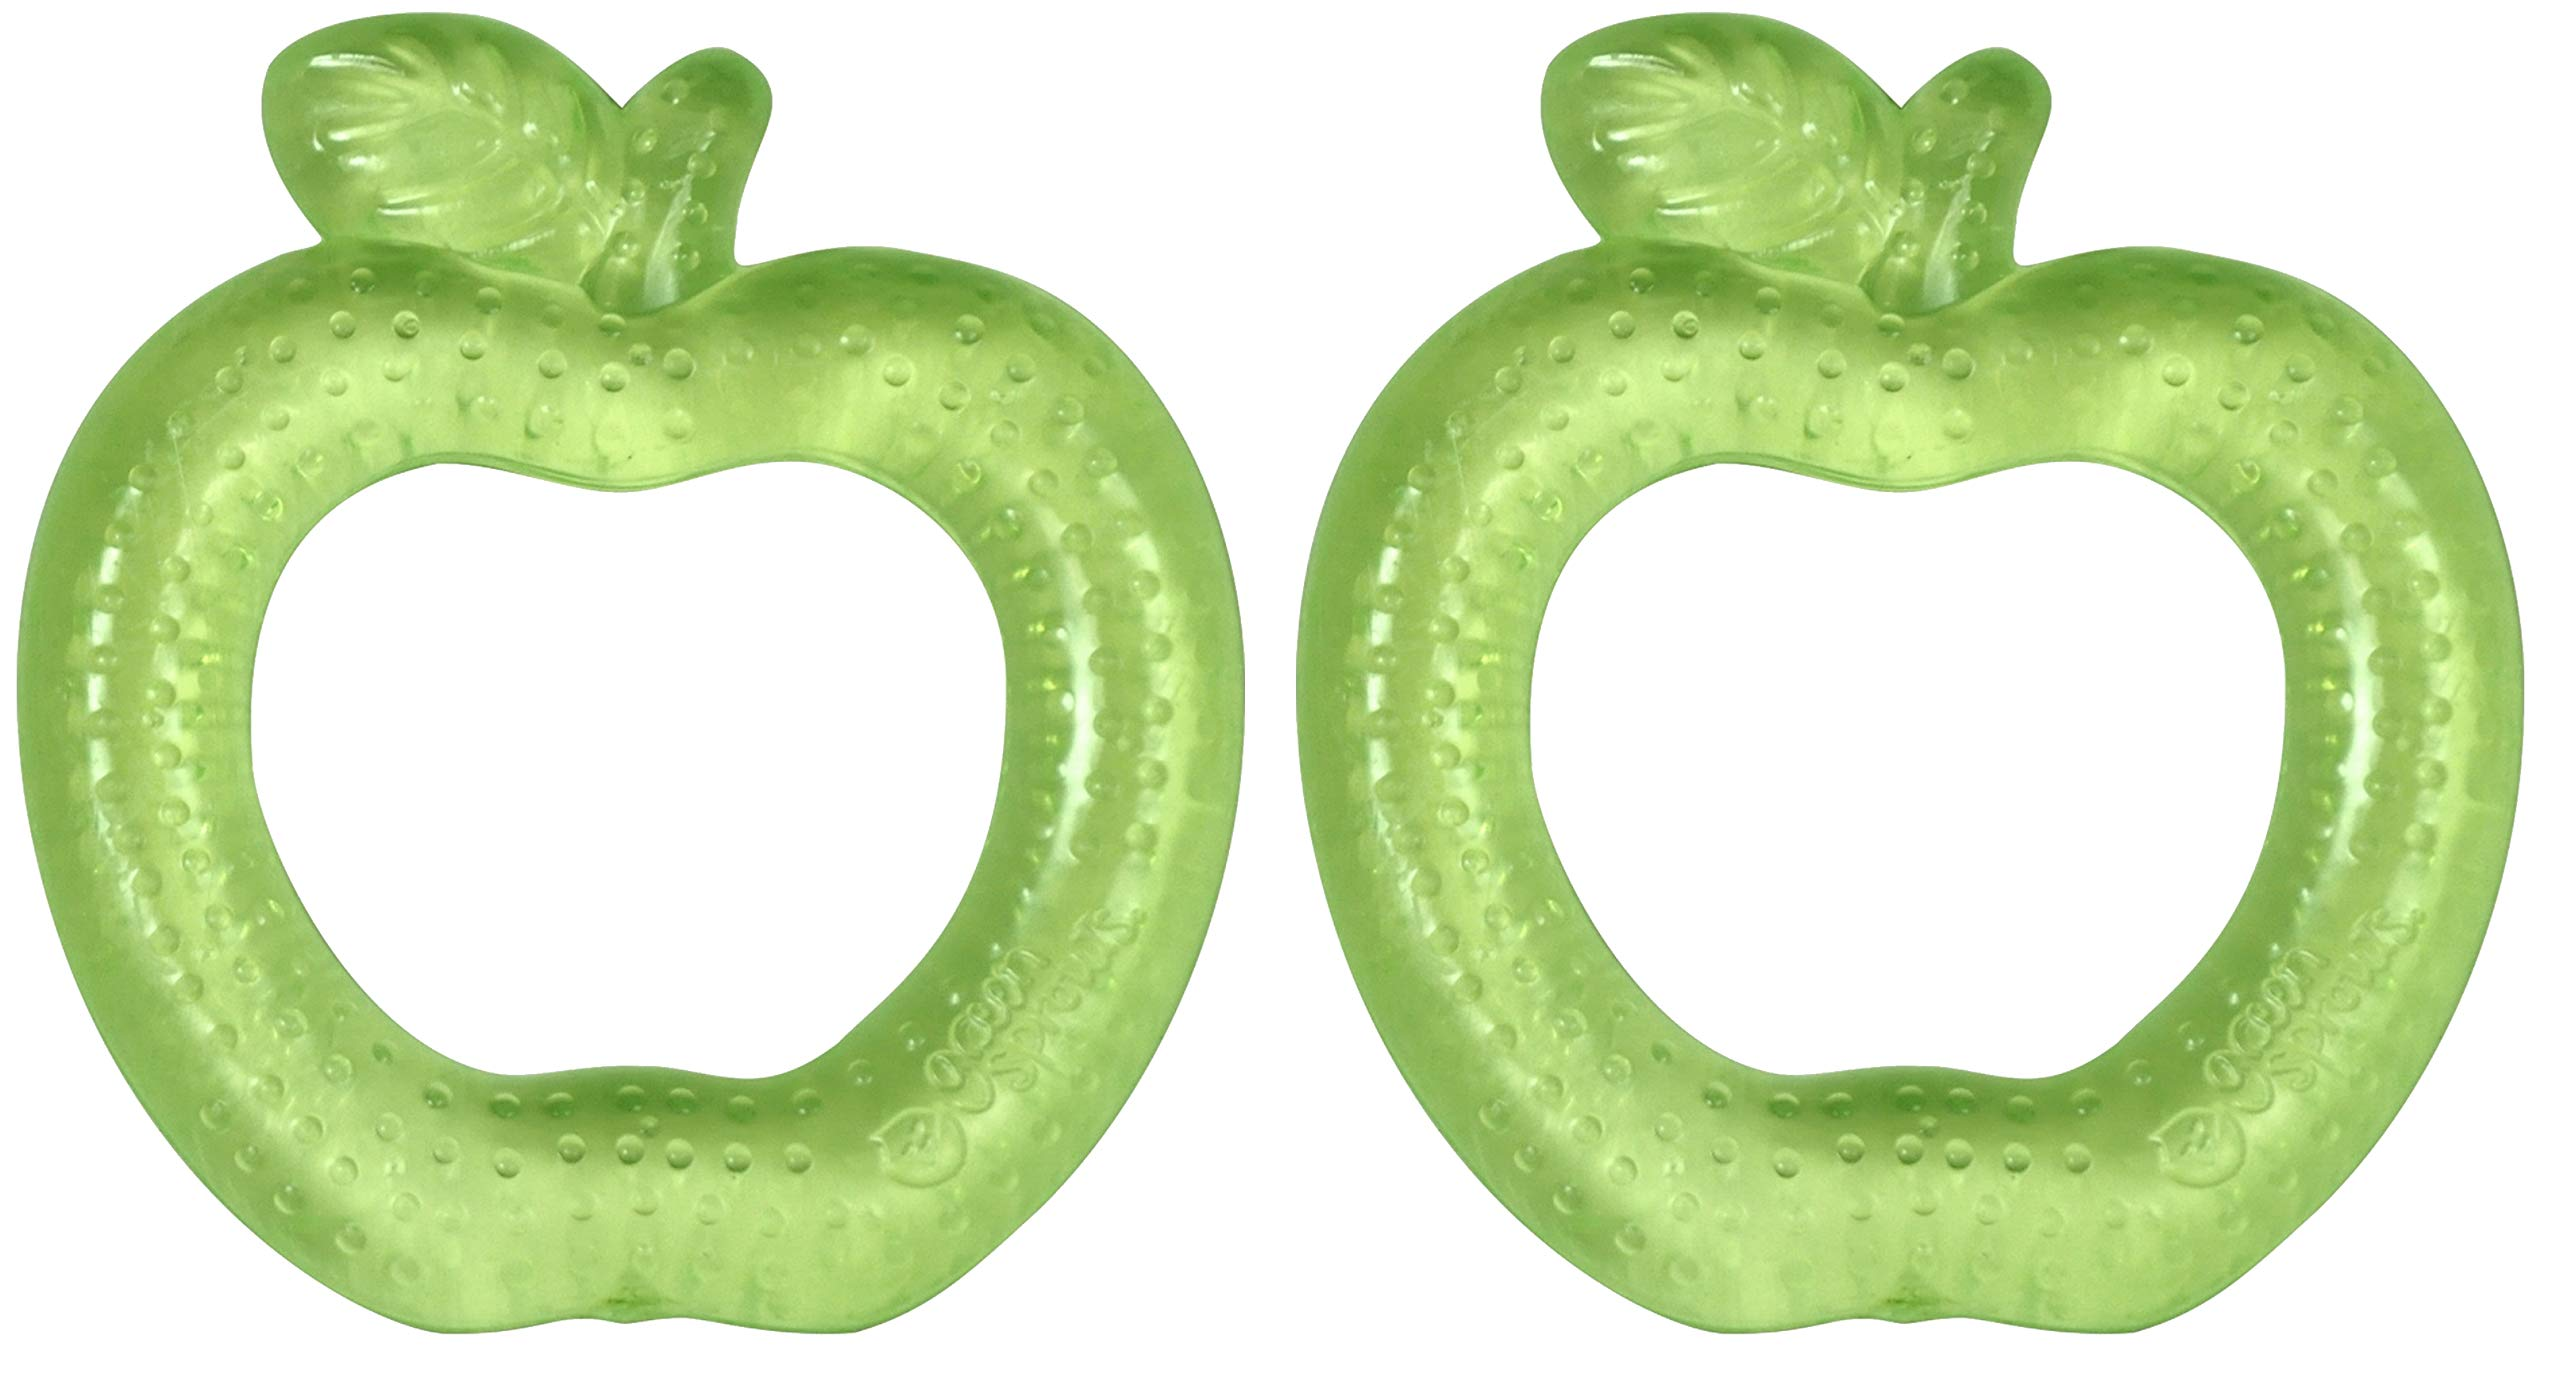 green sprouts Cooling Teether (2 Pack) | Soothes Gums & Promotes Healthy Oral Development | Safer Plastic Filled with sterilized Water, Chill for Extra Relief, Textured Surface to Massage Gums